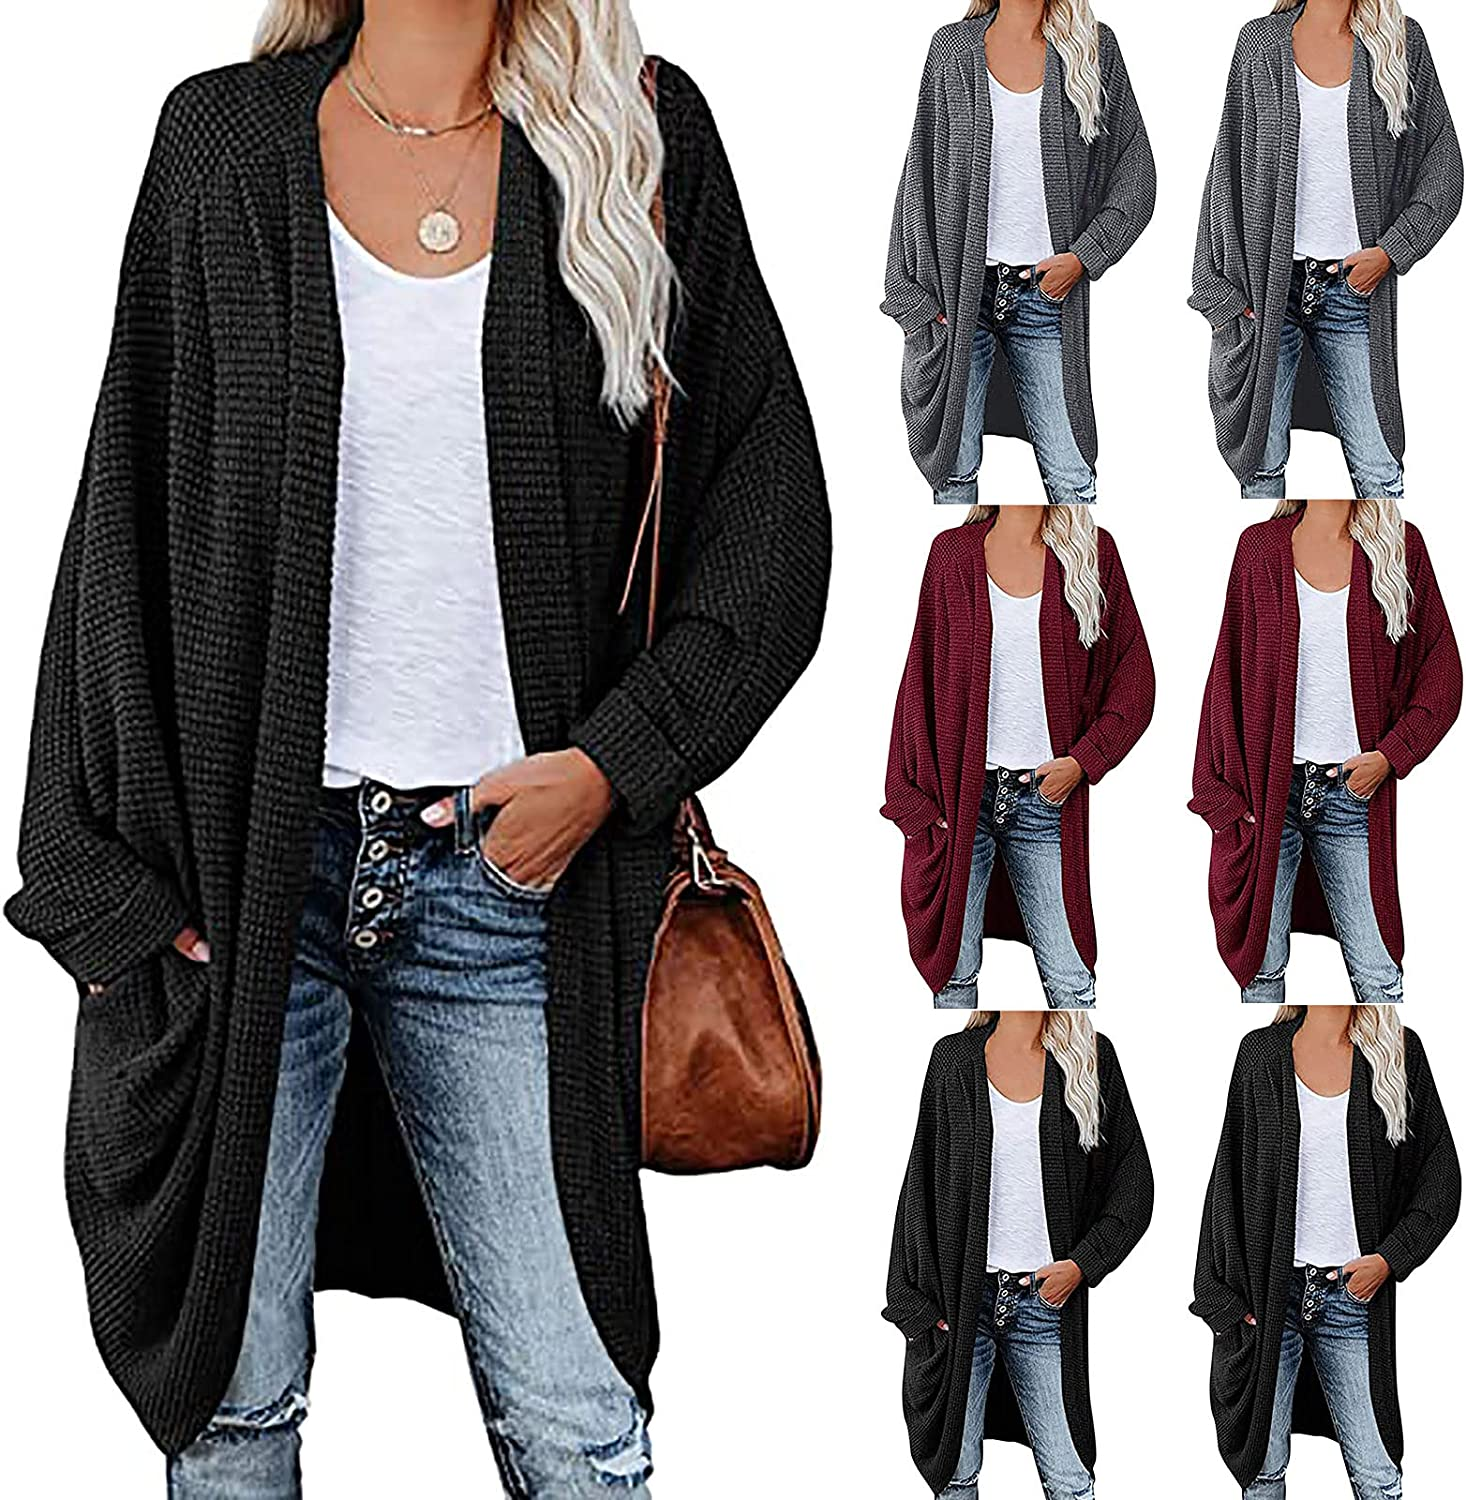 Women's Casual Long Knit Cardigan Autumn Winter Long Sleeve Solid Color Outerwear Tops Ladies Pockets Blouse Coat